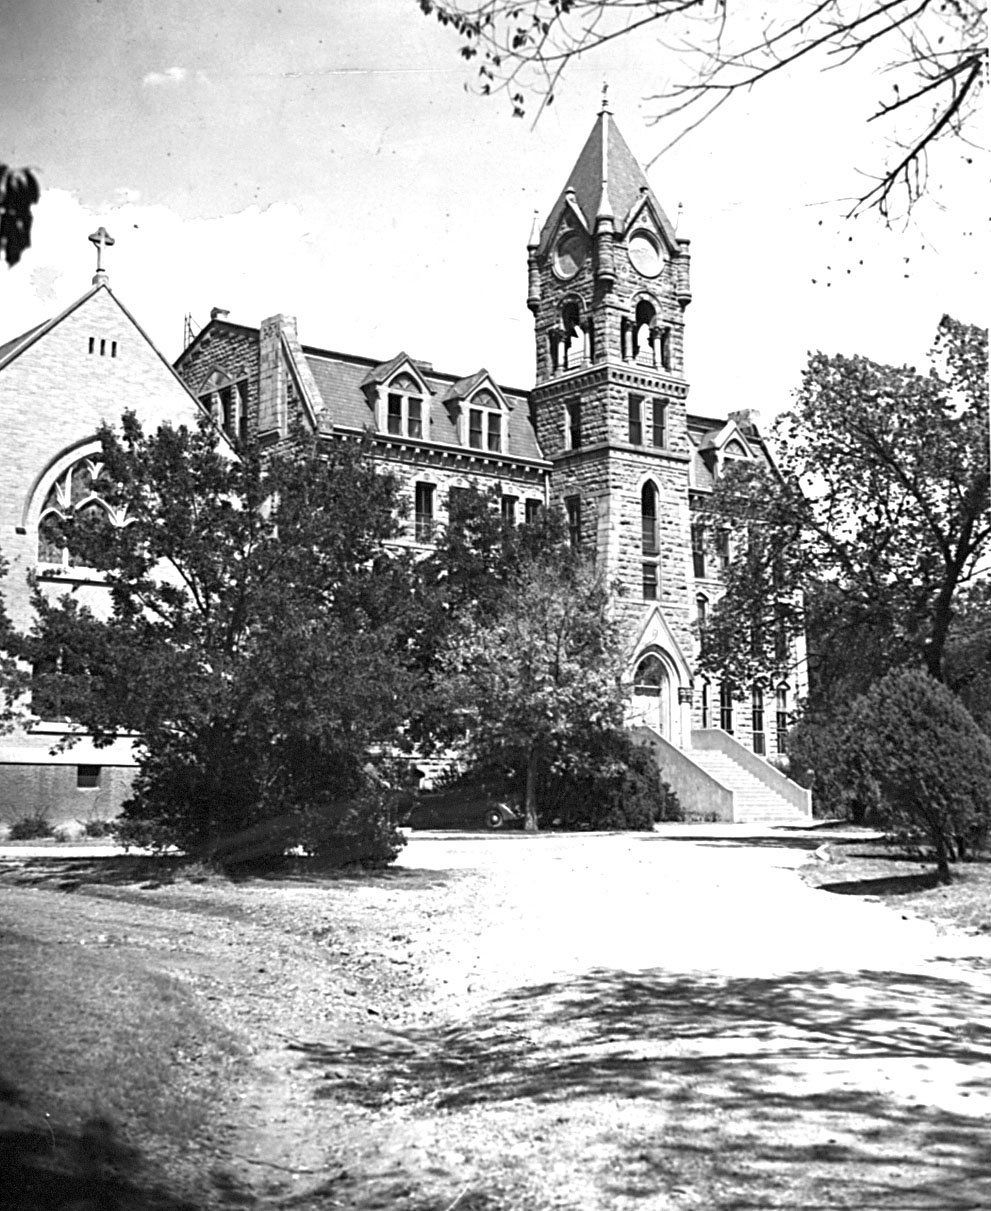 The Victorian Gothic St. Mary's College was built in 1884-86 on the block bounded by Ross, Henderson, Garrett and San Jacinto streets.  The towering stone college building, the work of Dallas architect A. B. Bristol, was demolished in 1948. The college cathedral, on the left, survives.